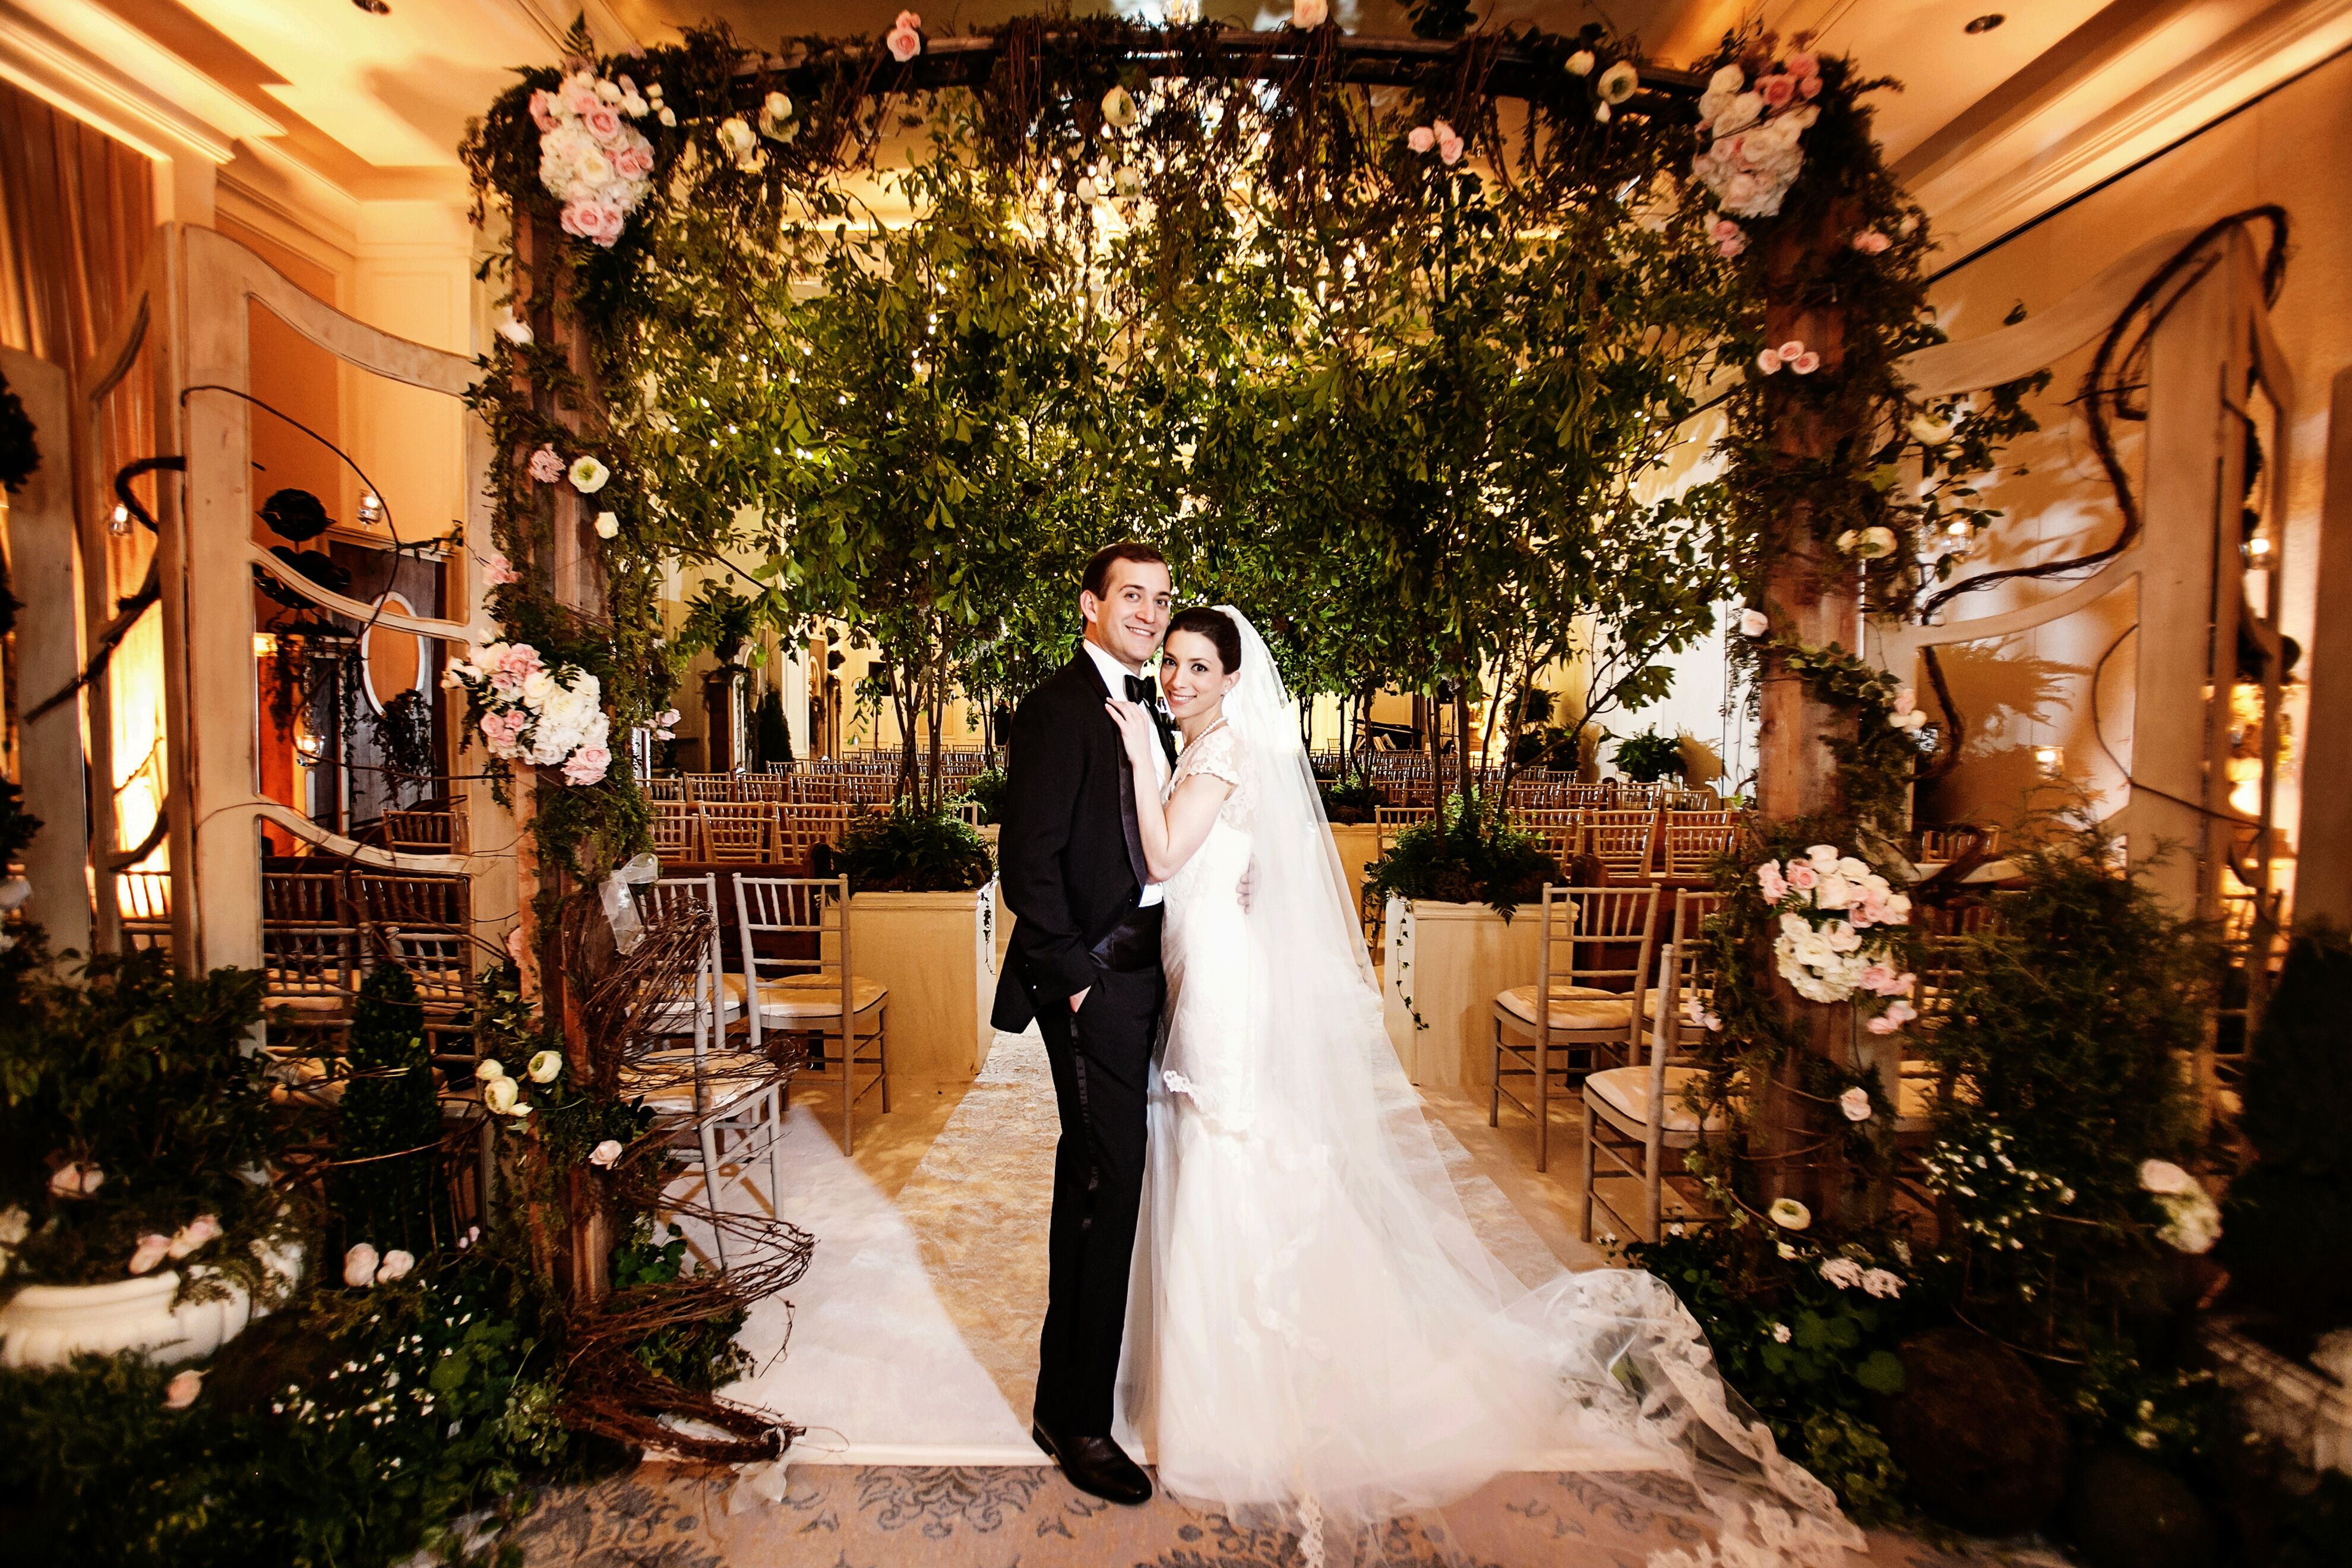 A Romantic, Fairy-tale Wedding in Atlanta, GA